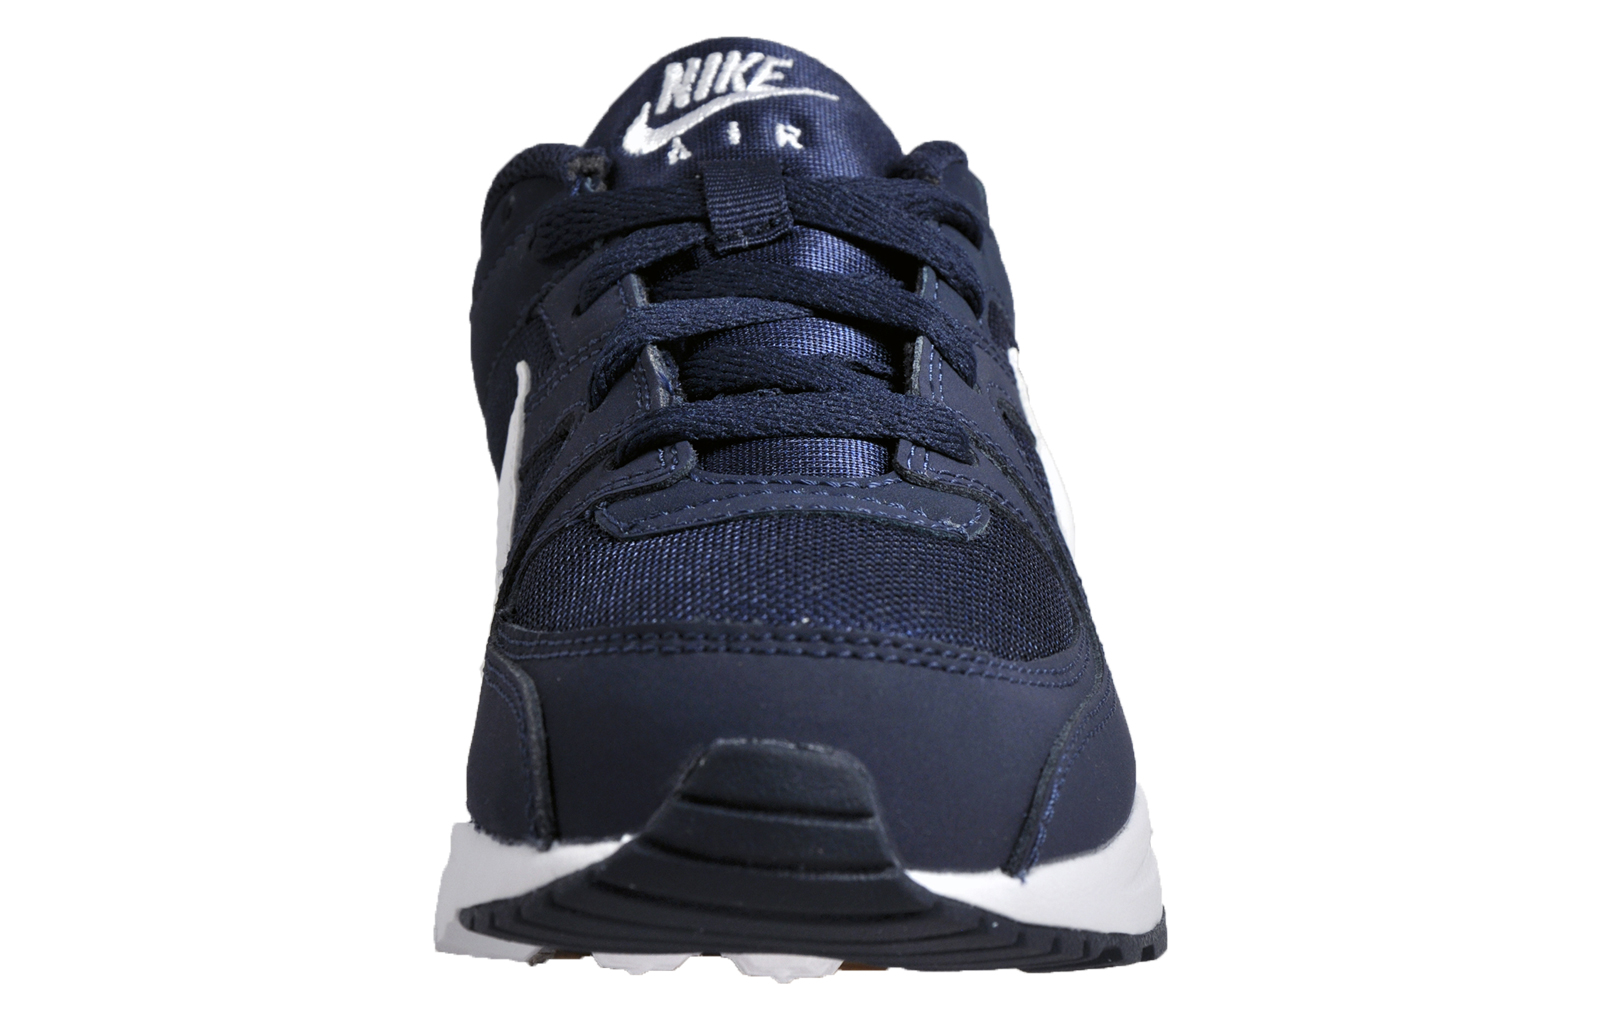 new style cfa5e 0c53d Nike Air Max Command Flex Junior Kids Classic Casual Retro Trainers Navy ...